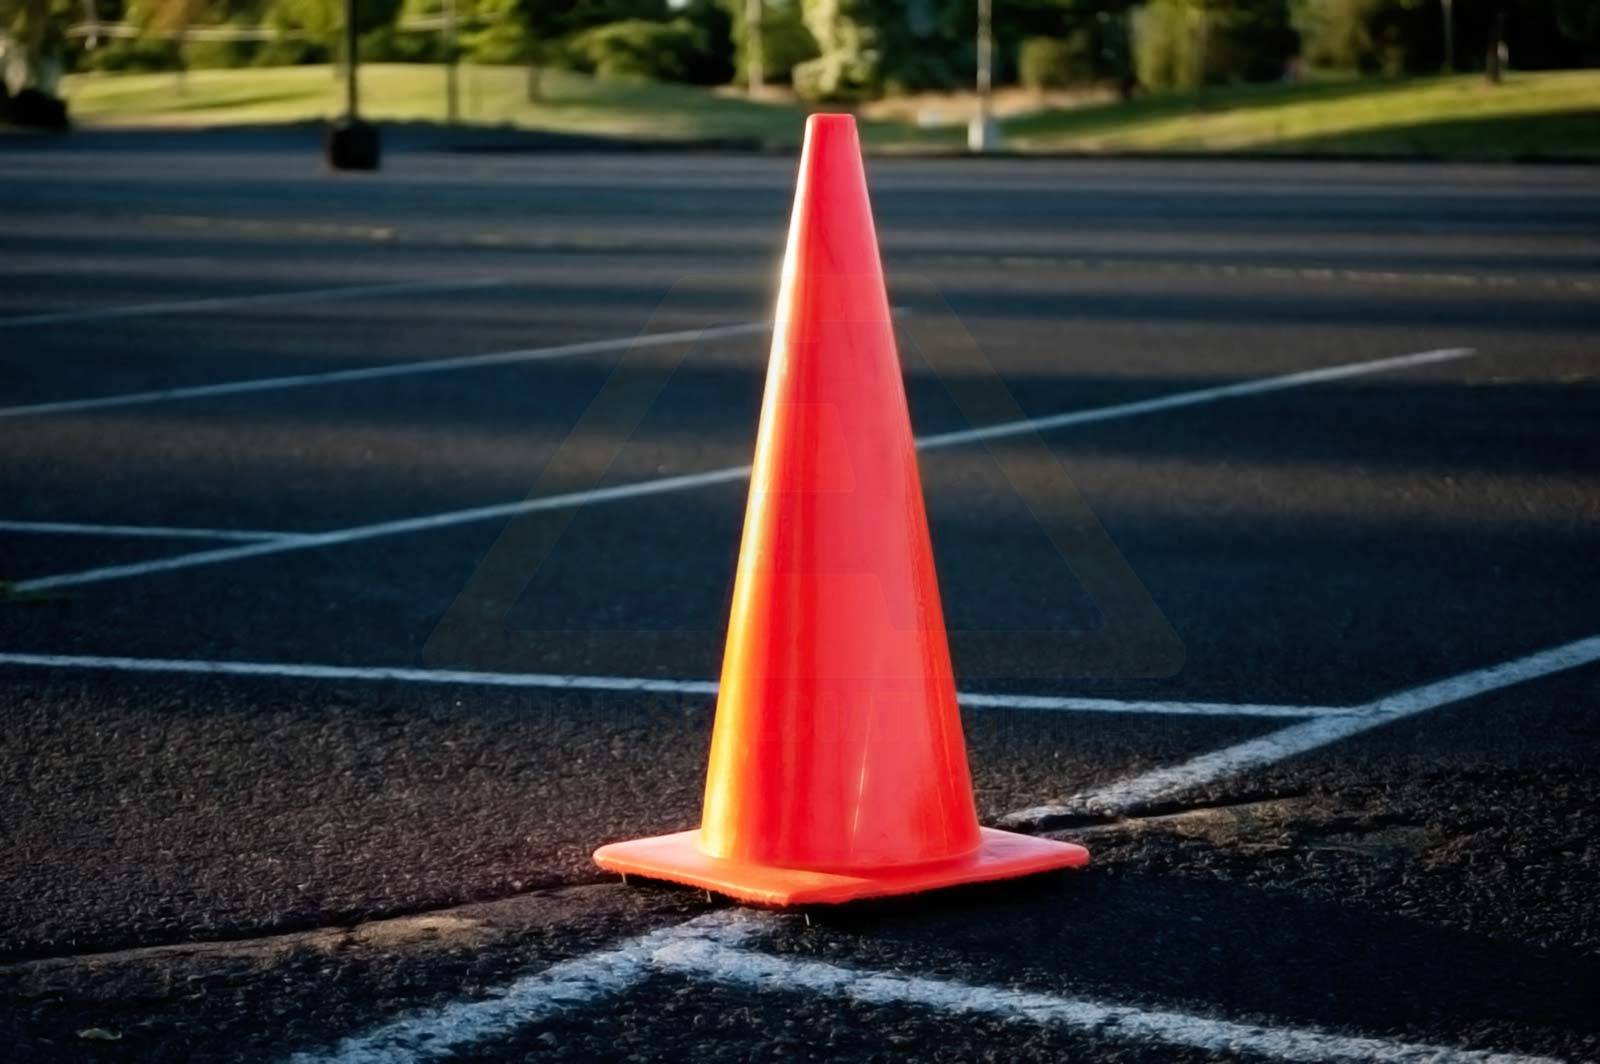 dating a traffic cone Smart cones are a safe and efficient method for self-deployment and retrieval of traffic cones for smart traffic control cones has a expiration date.